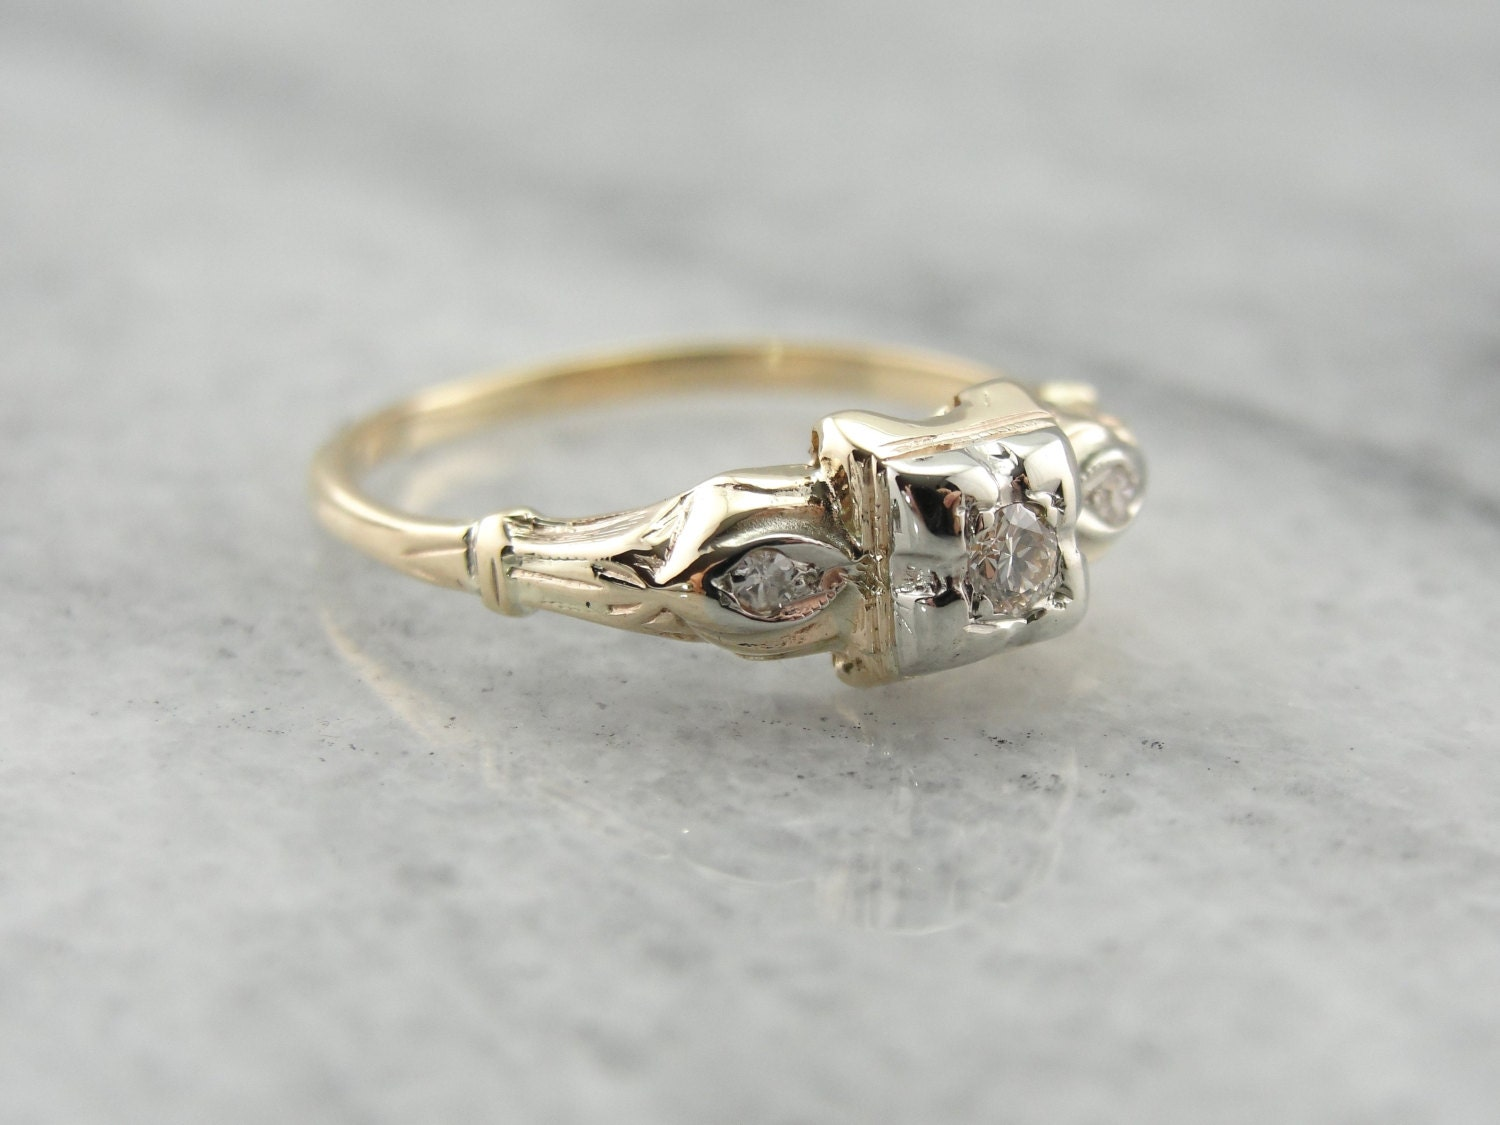 1930's Antique Diamond Engagement Ring YDKMFR-R